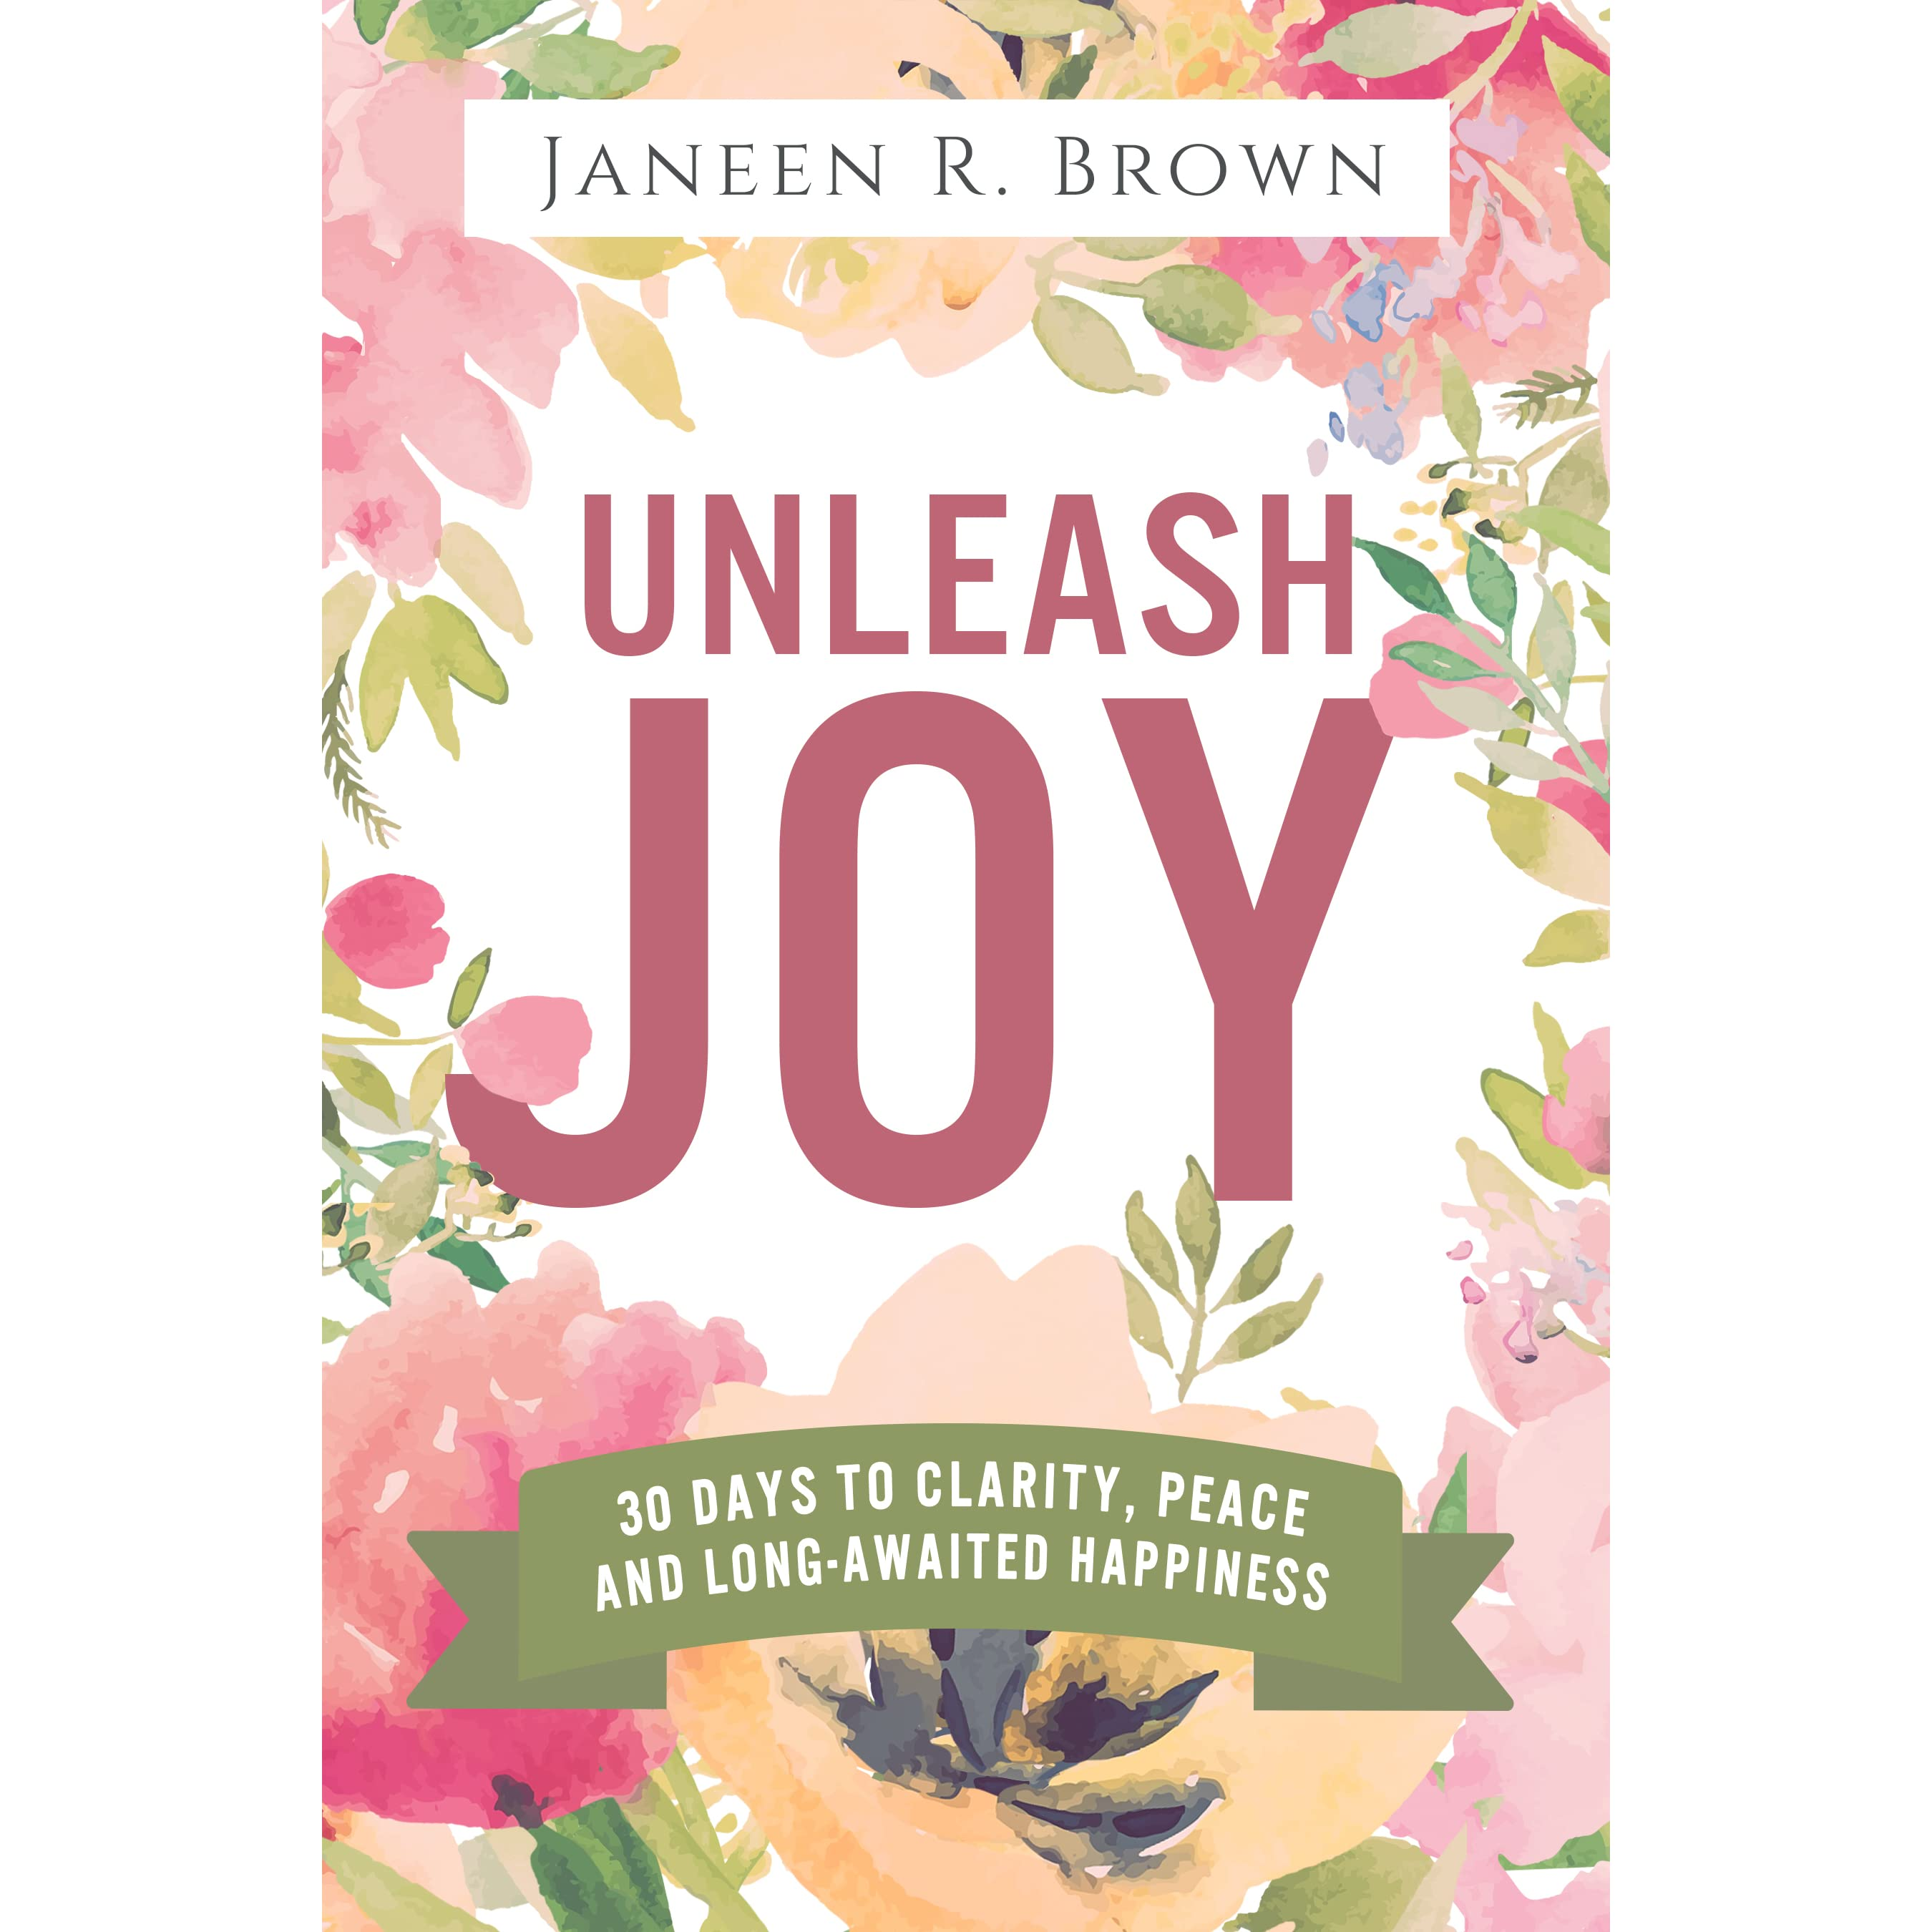 Margaret Standafer S Reviews Unleash Joy 30 Days To Clarity Peace And Long Awaited Hiness